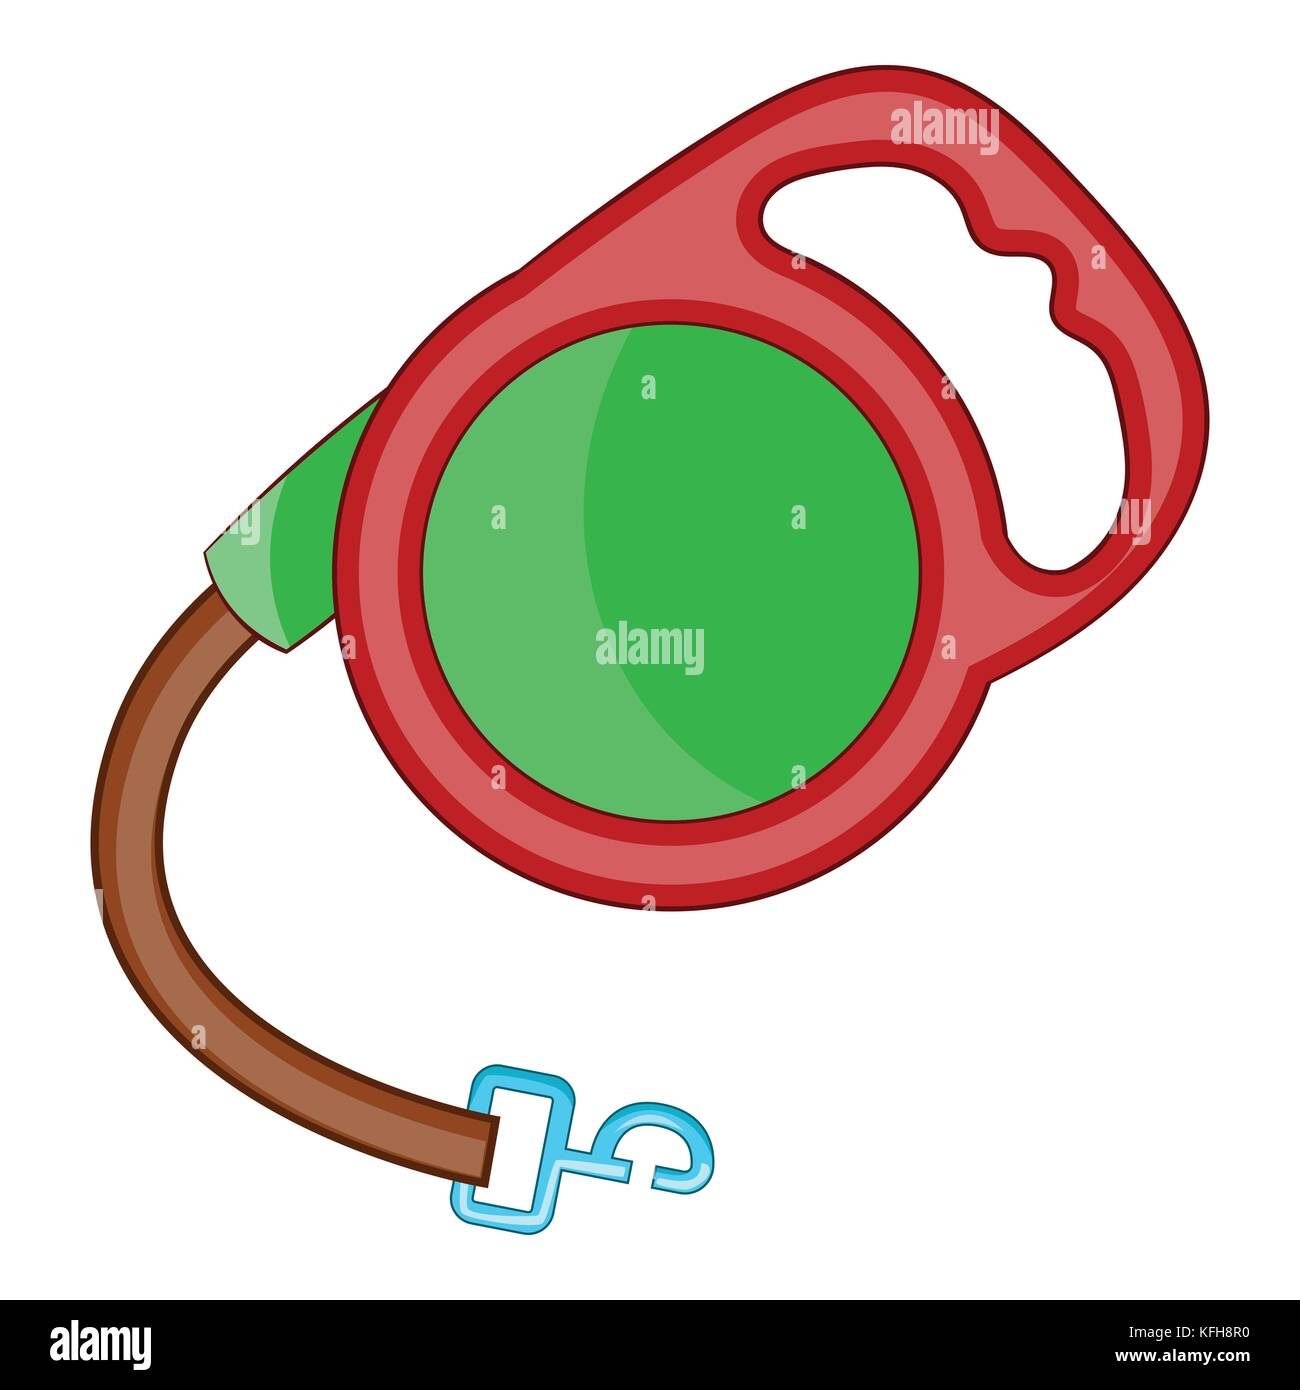 Retractable leash for dog icon, cartoon style - Stock Image